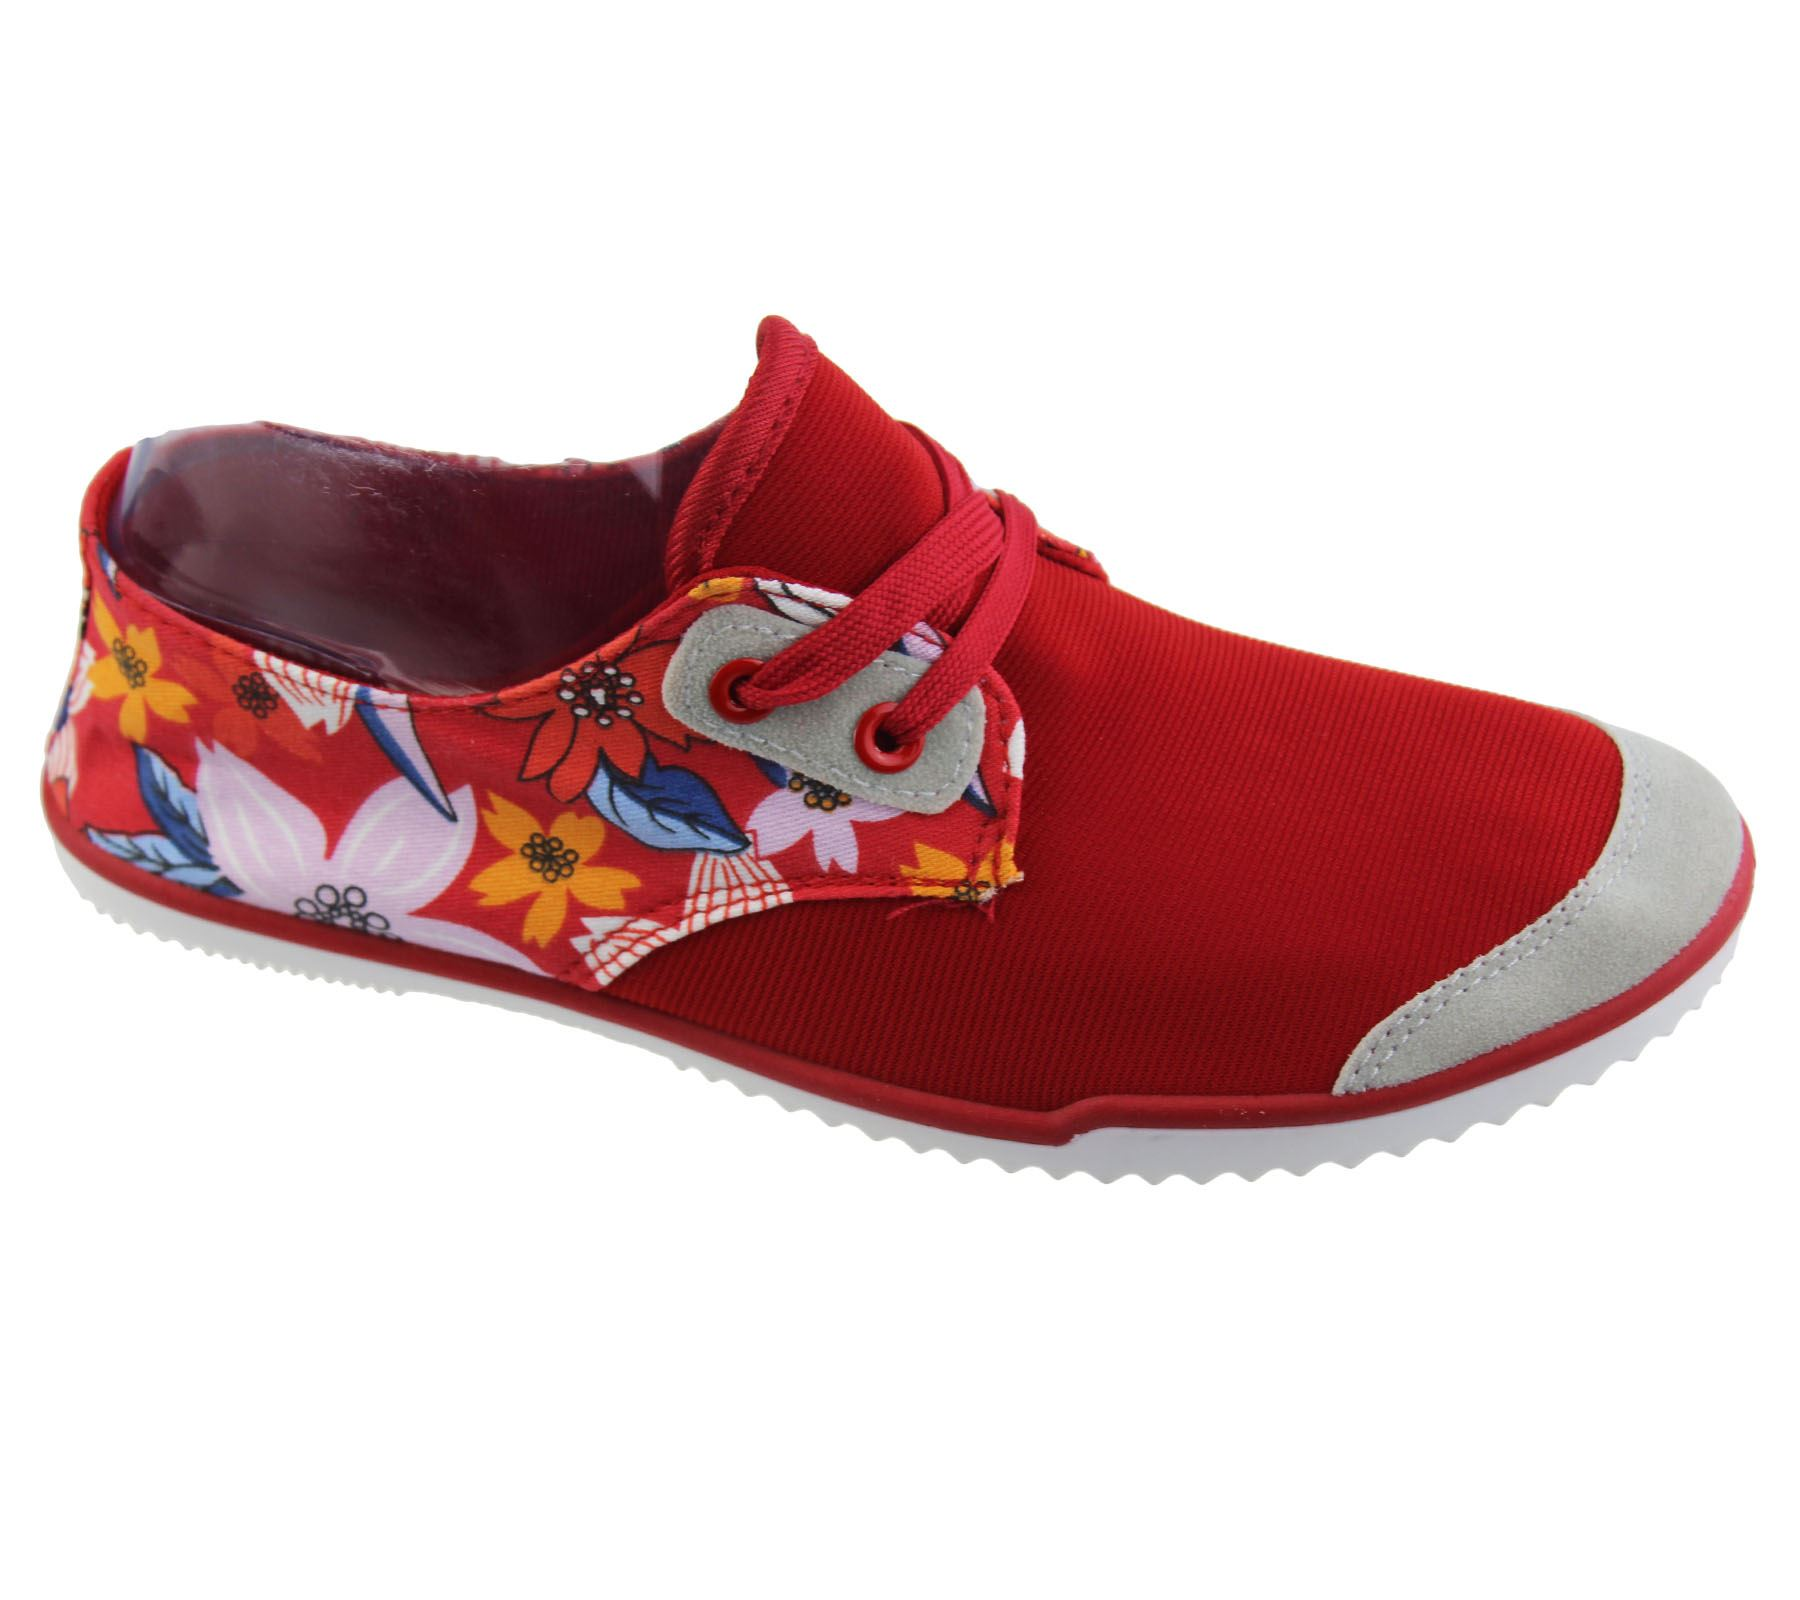 View all ladies footwear Browse through our amazing range of ladies canvas shoes for a great casual, sporty look. Our womens canvas shoes features top brands such as SoulCal, Miss Fiori, Converse, Skechers, Vans and lots more at low prices.